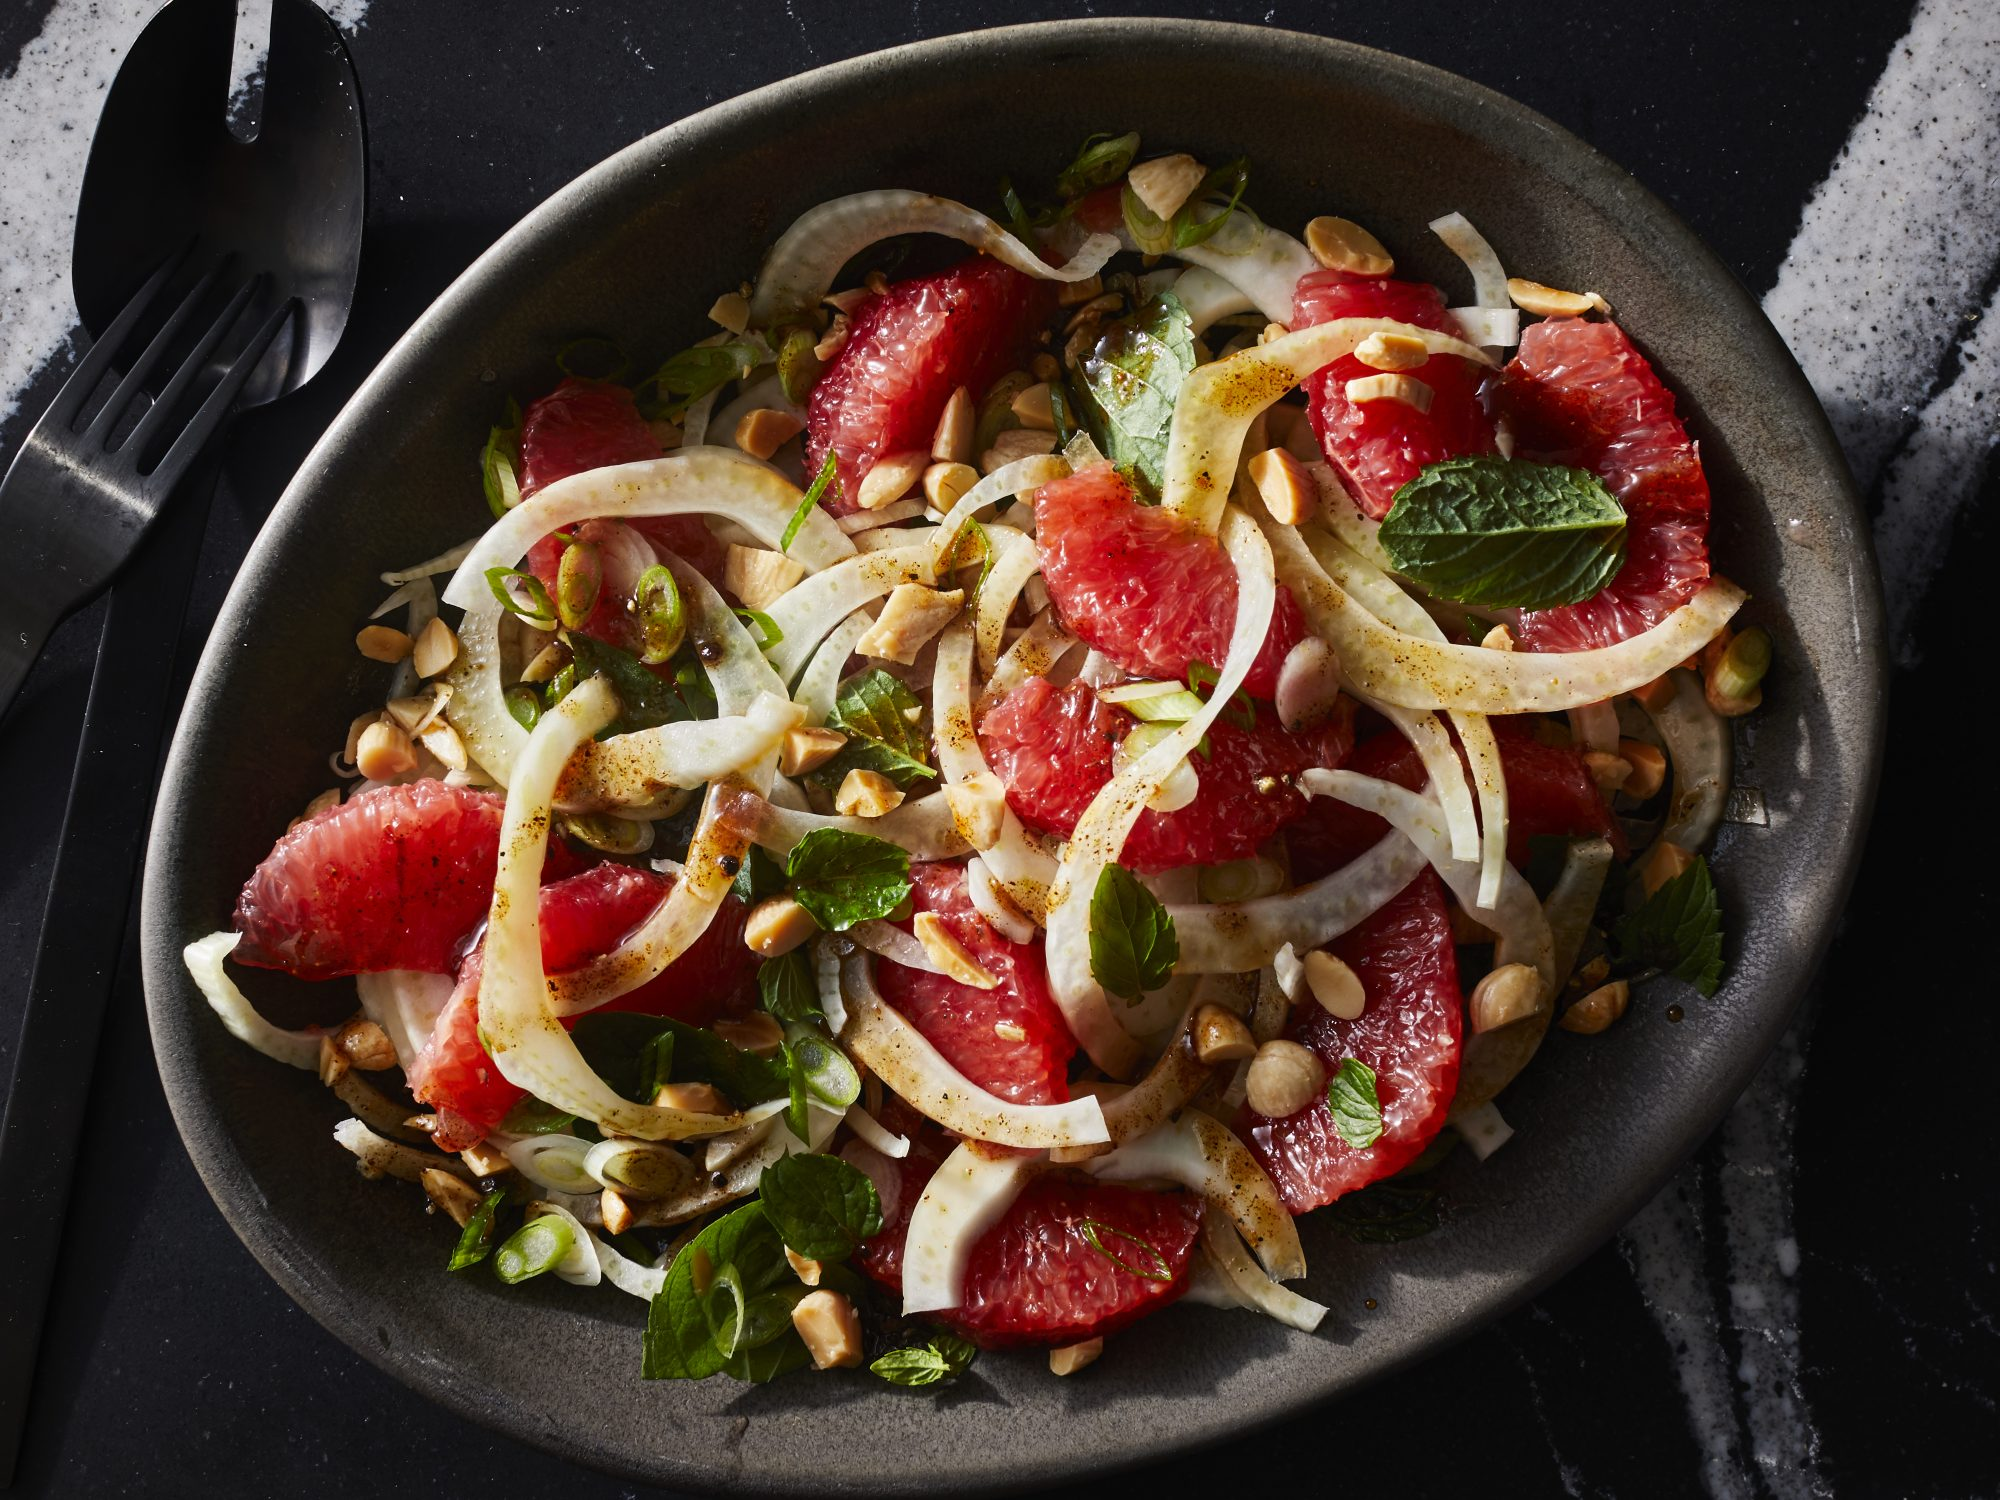 Grapefruit-Fennel-Salad-with-Baharat-FT-Recipe2019162.jpg